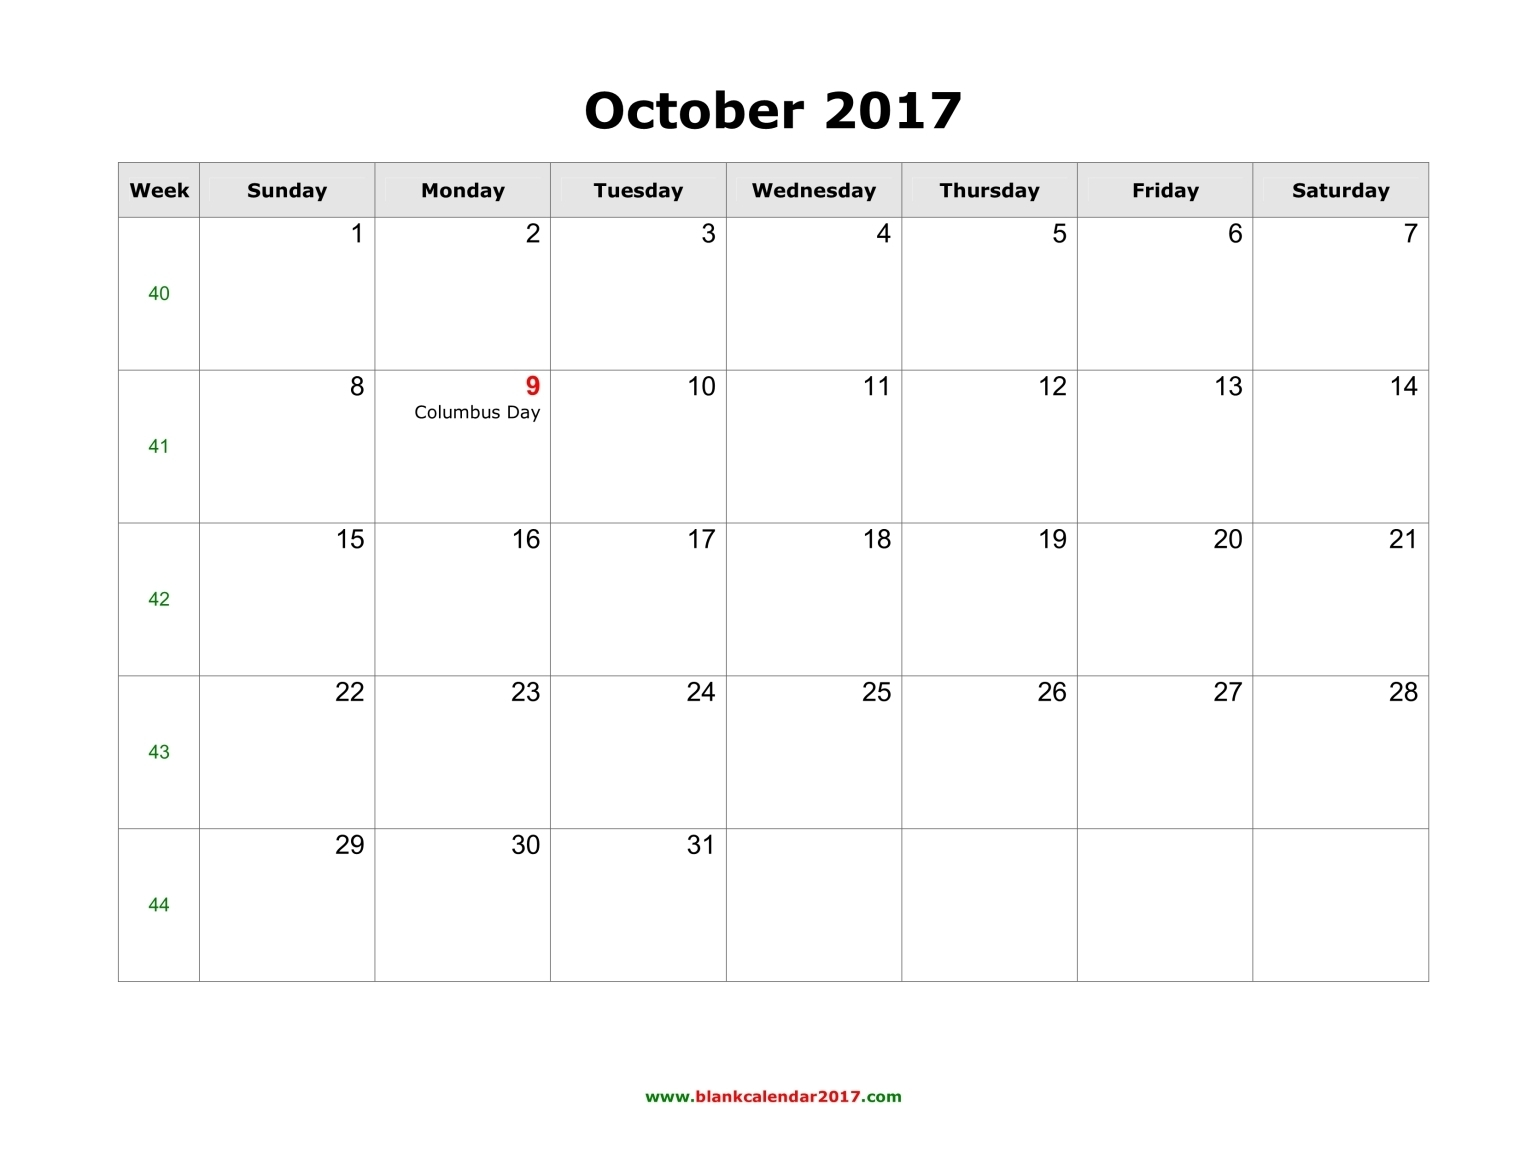 October 2017 Calendar With Holidays Canada | monthly calendar